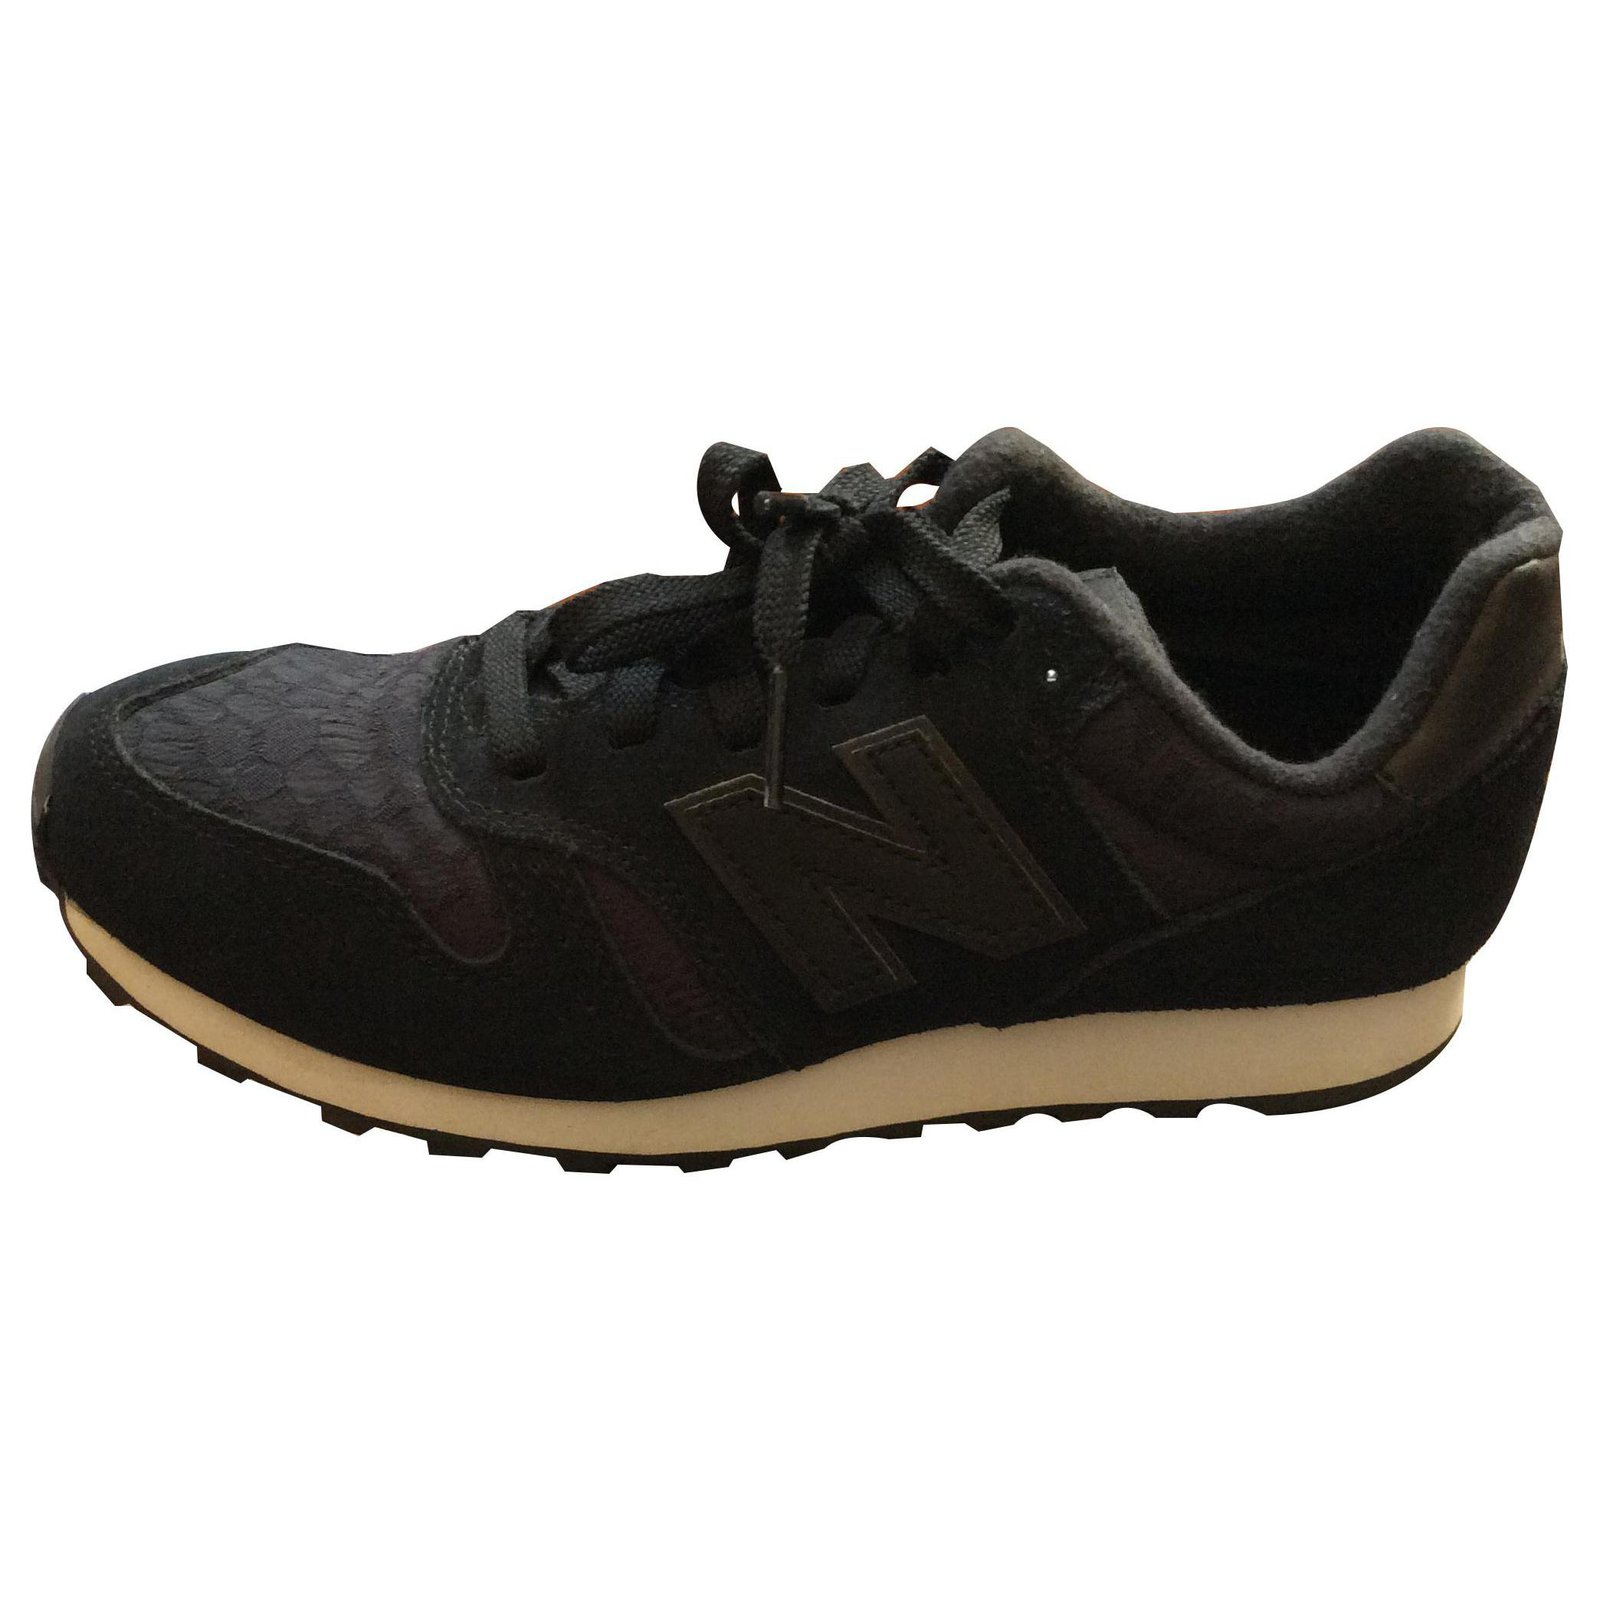 New Balance WL373 Sneakers Synthetic